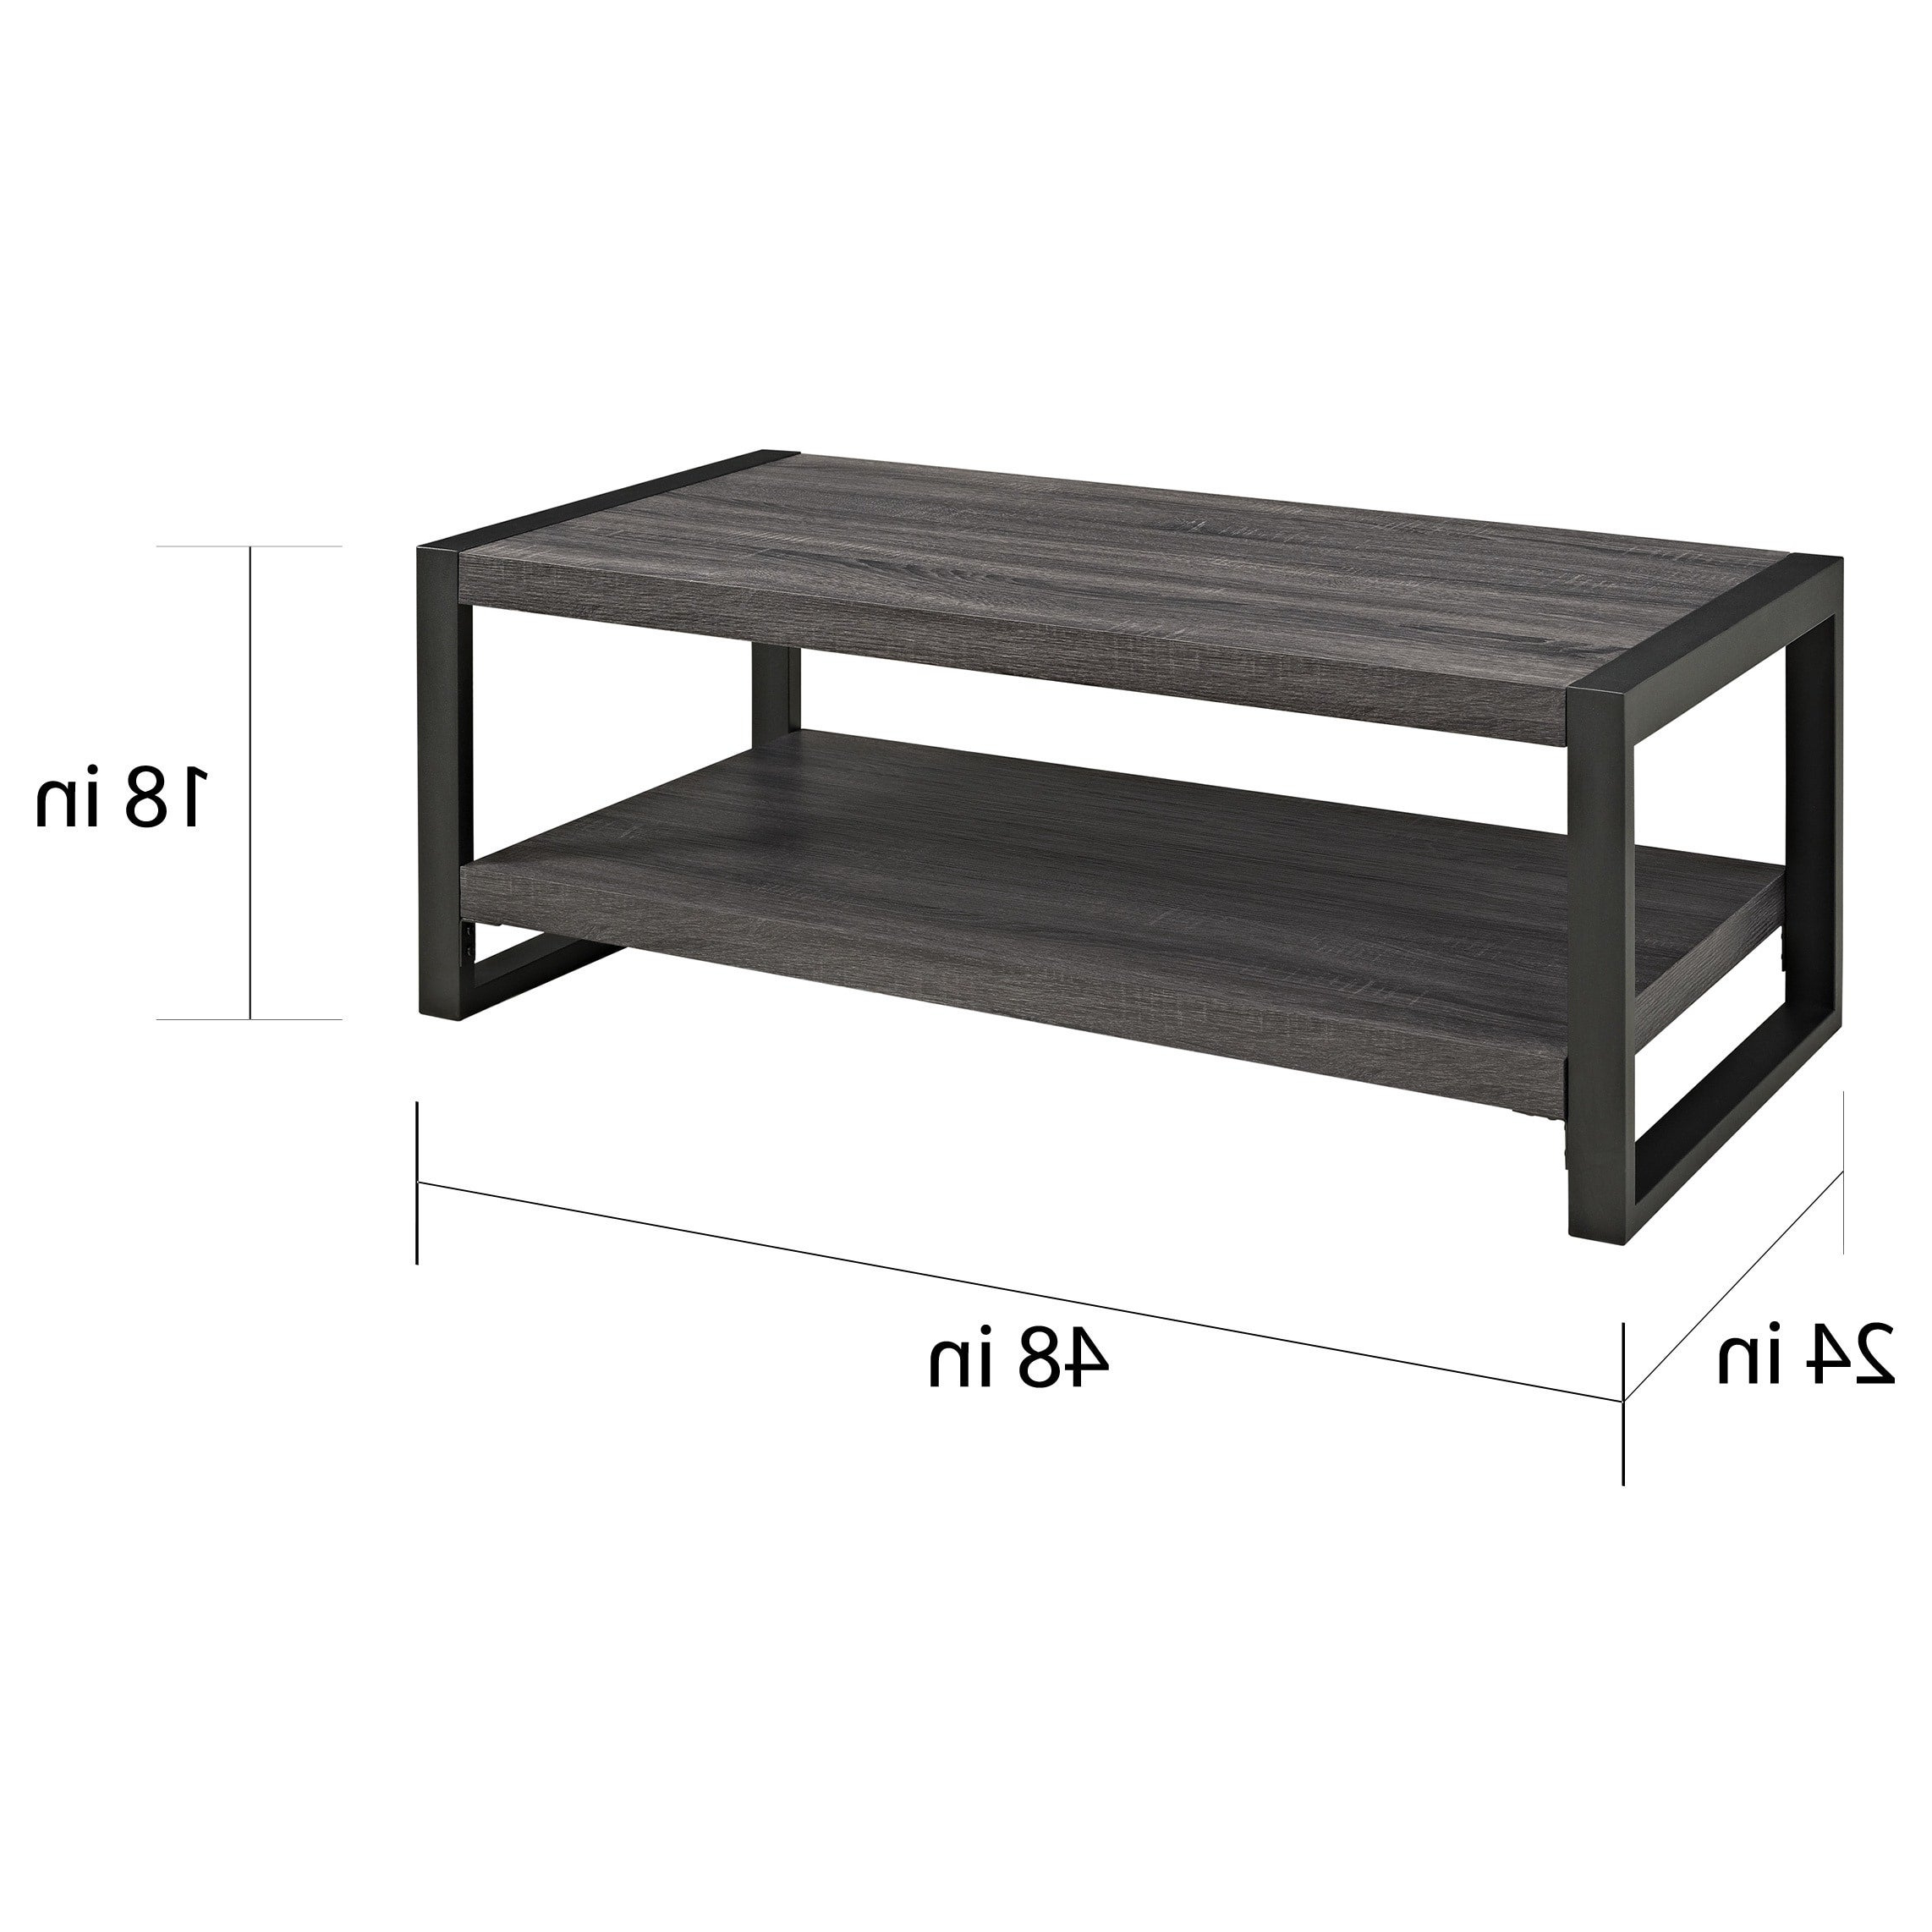 2020 Carbon Loft Hamilton 48 Inch Coffee Tables With Carbon Loft Hamilton 48 Inch Coffee Table – 48 X 24 X 18H (View 2 of 20)